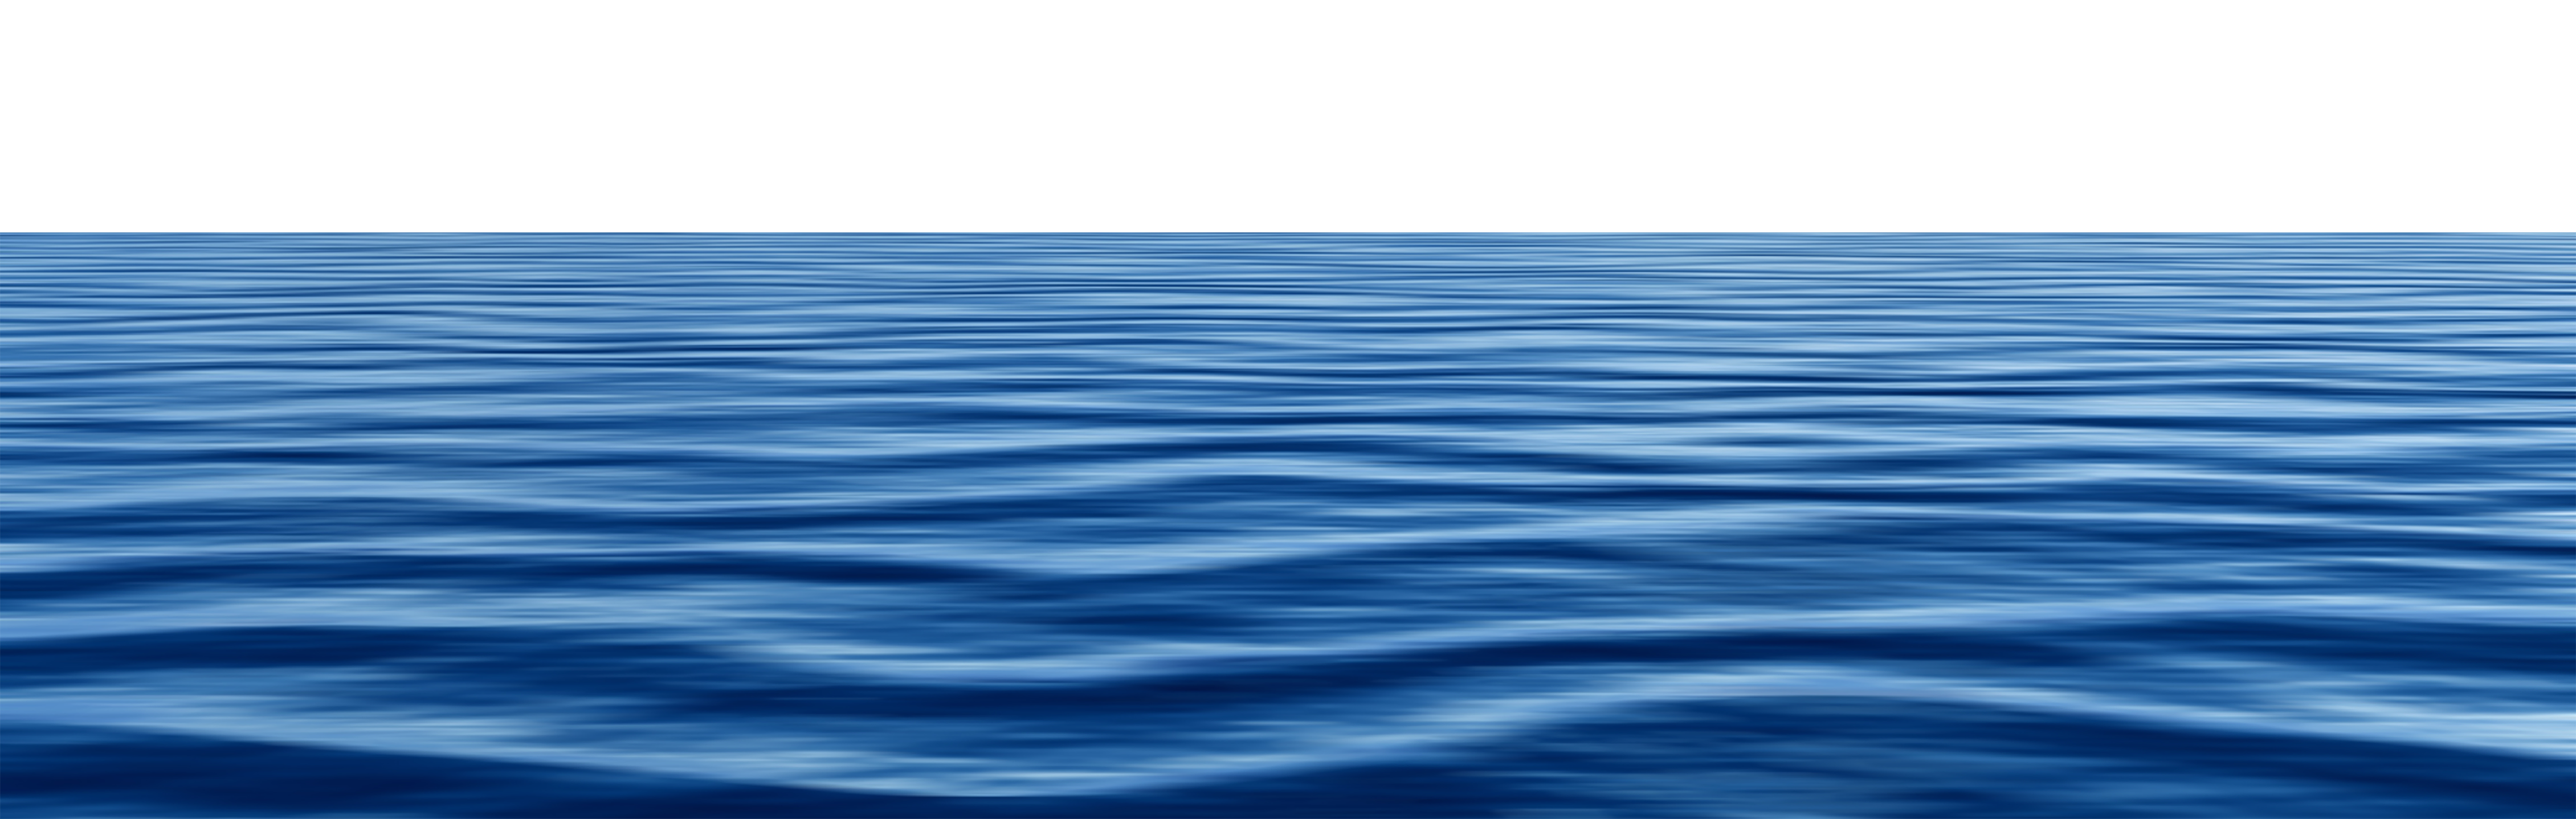 Ocean waves clipart png. Blue sea ground picture